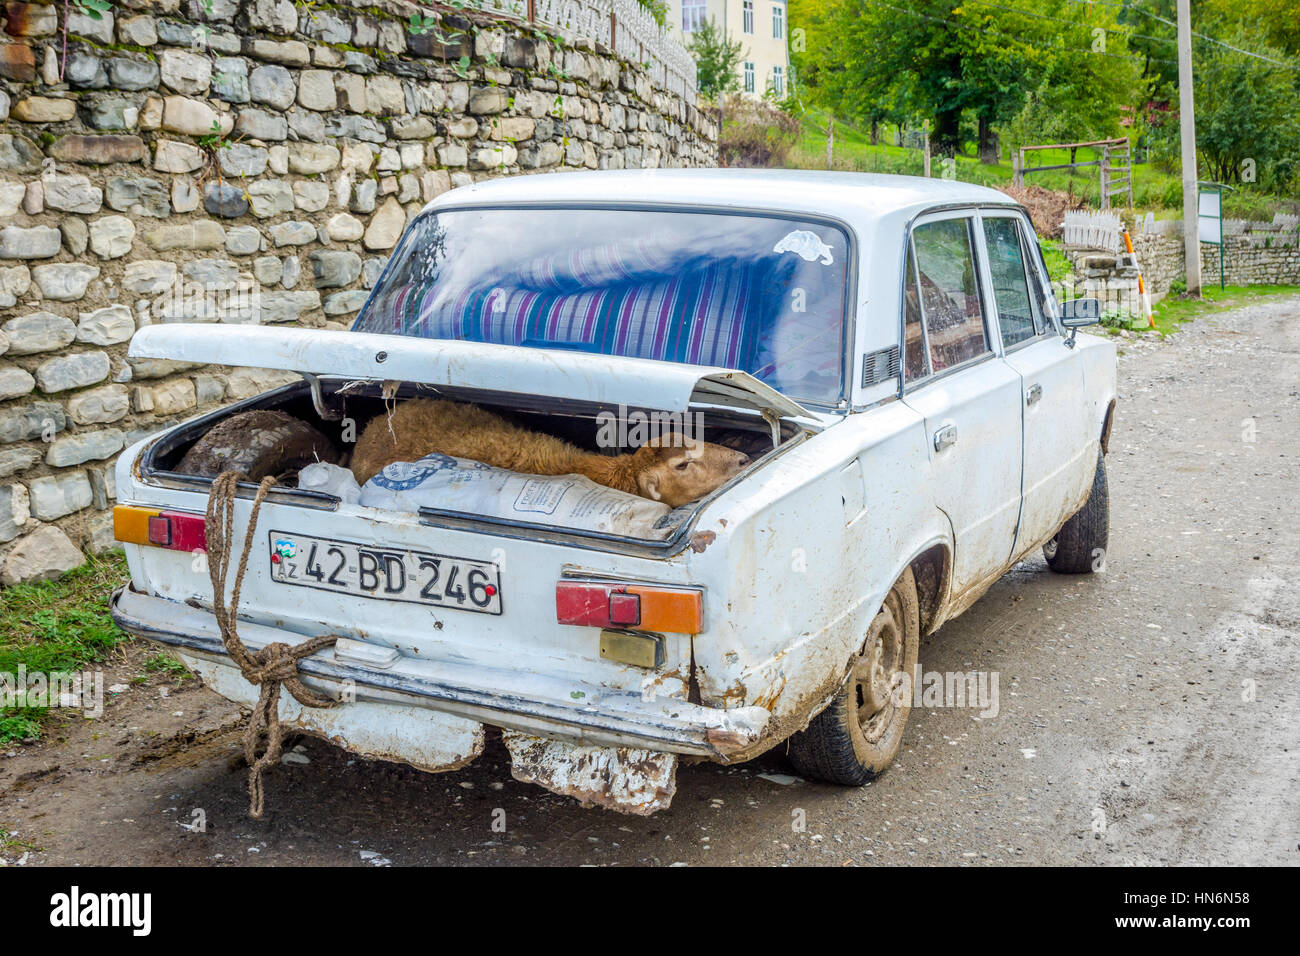 LAHICH, AZERBAIJAN - OCTOBER 1: Sheep to be transported in the trunk of old lada car in Azeri countryside. October - Stock Image